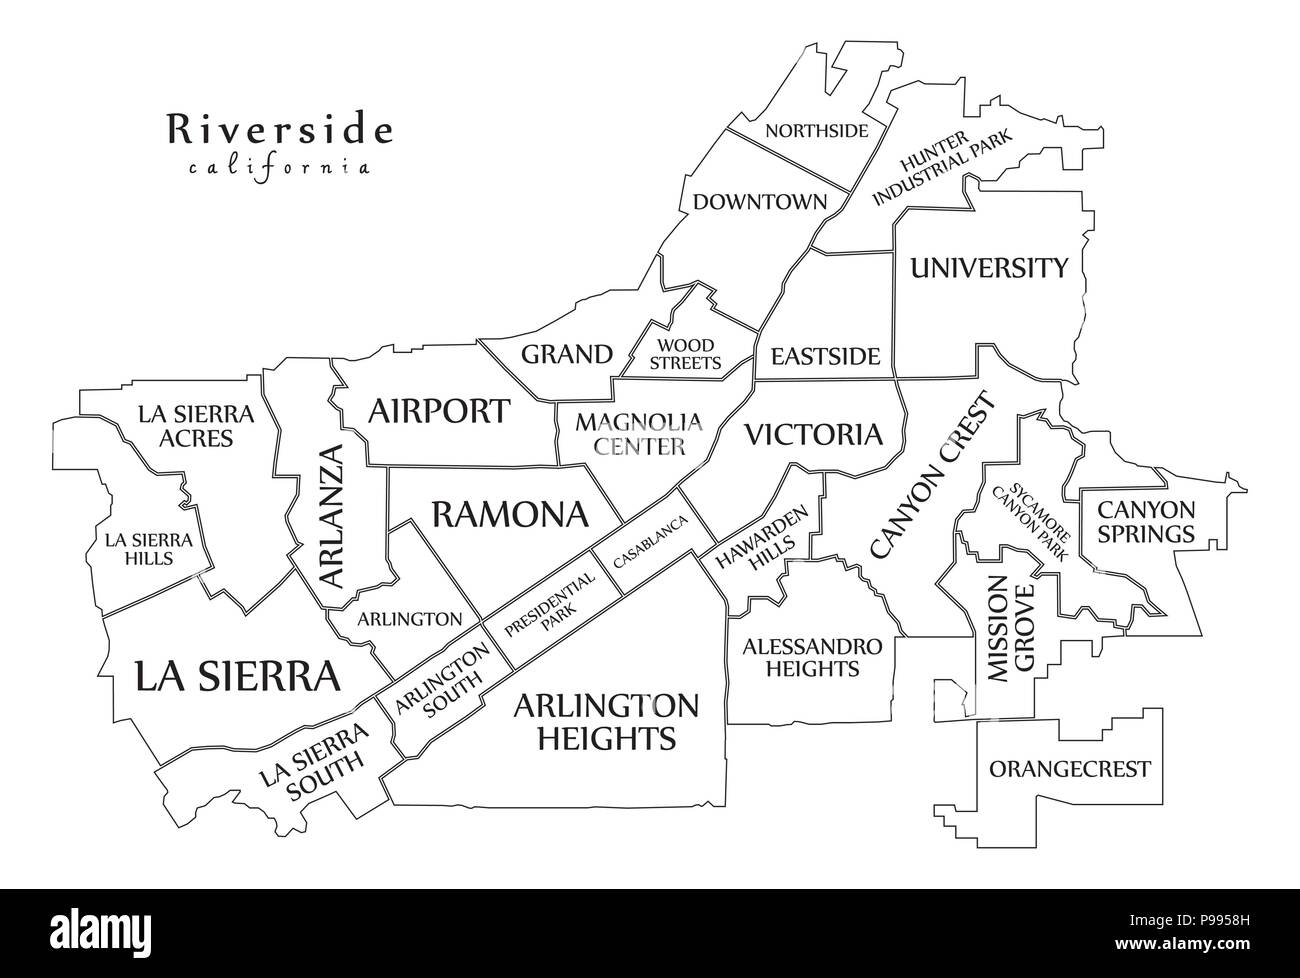 Modern City Map - Riverside California city of the USA with ... on lancaster map outline, chico map outline, inglewood map outline, fullerton map outline, san francisco map outline, washington and oregon map outline, usa map outline, inyo county map outline, avalon map outline,